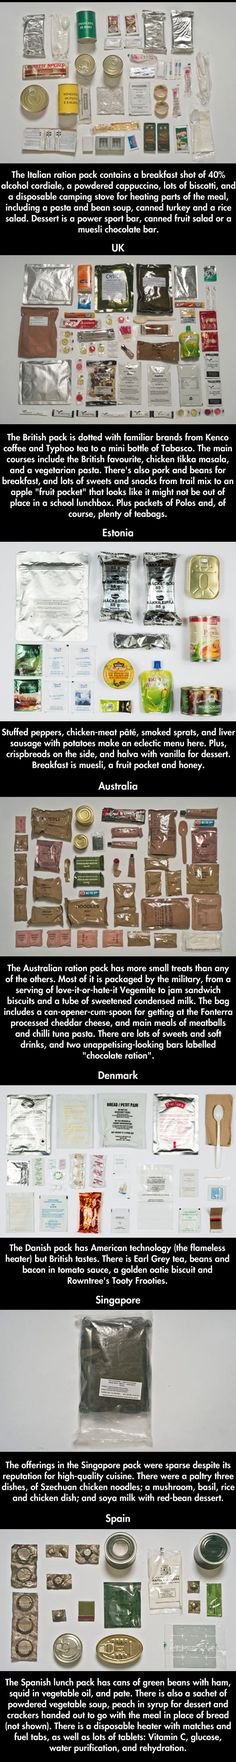 funny-military-field-rations-Germany-Spain